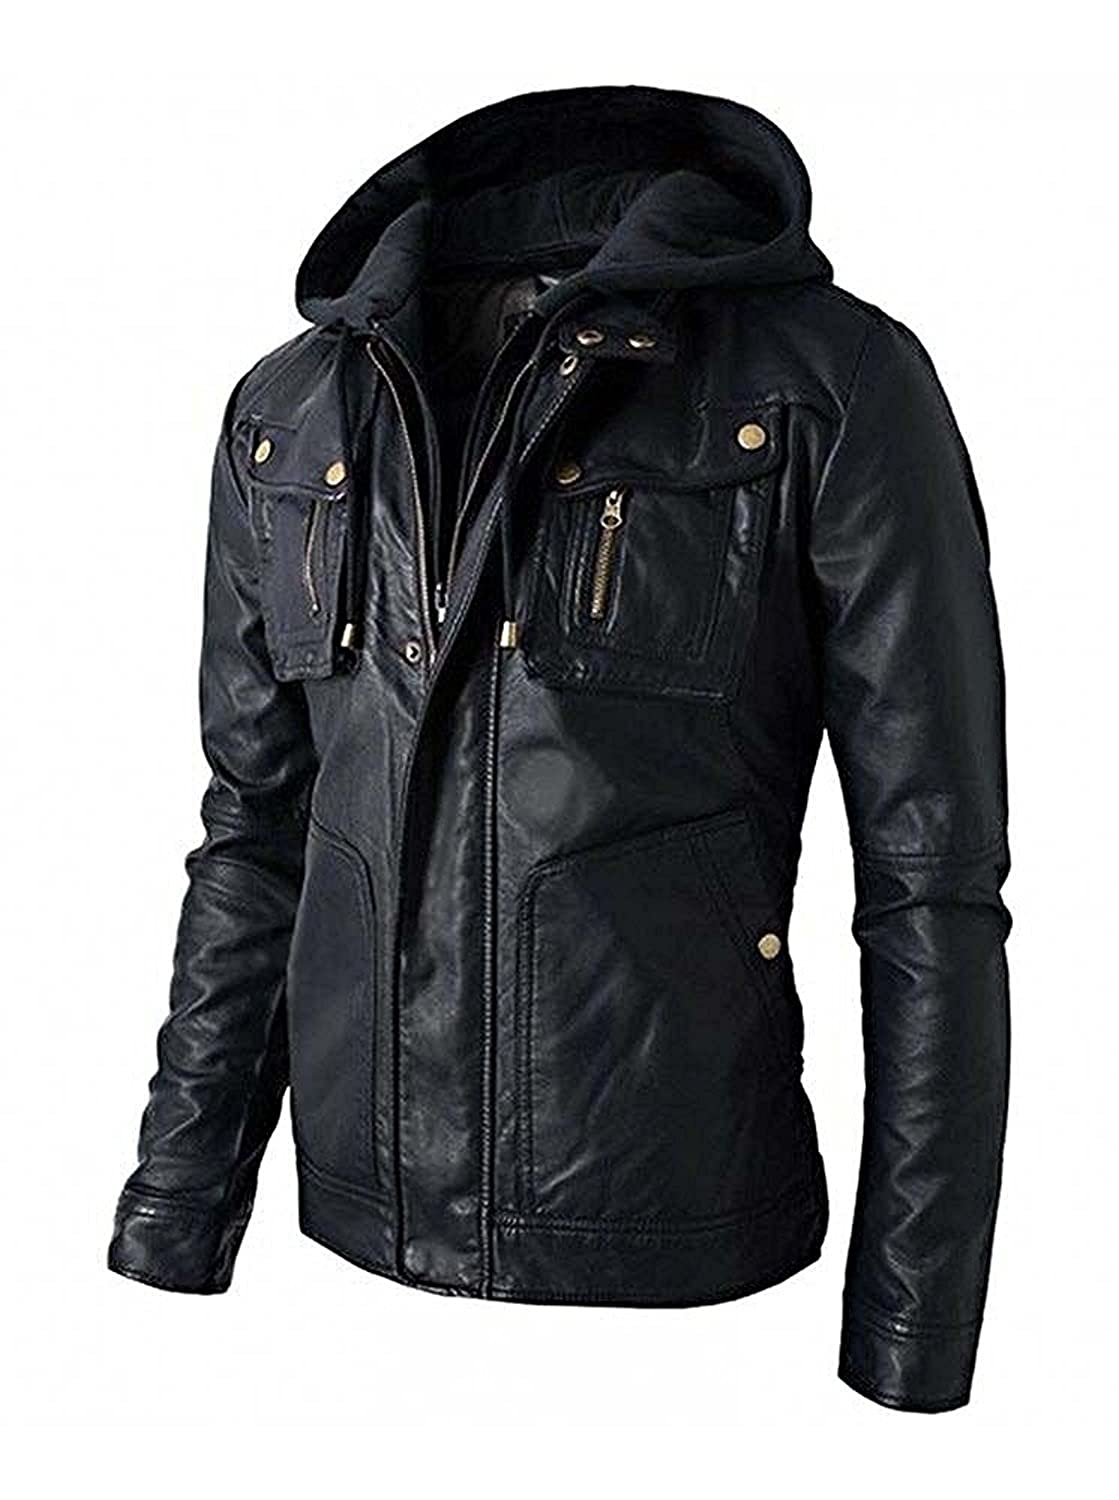 Men's Brando Motorcycle Style Biker Leather Hoodie Jacket - Detachable Hood Coat The Custom Jacket